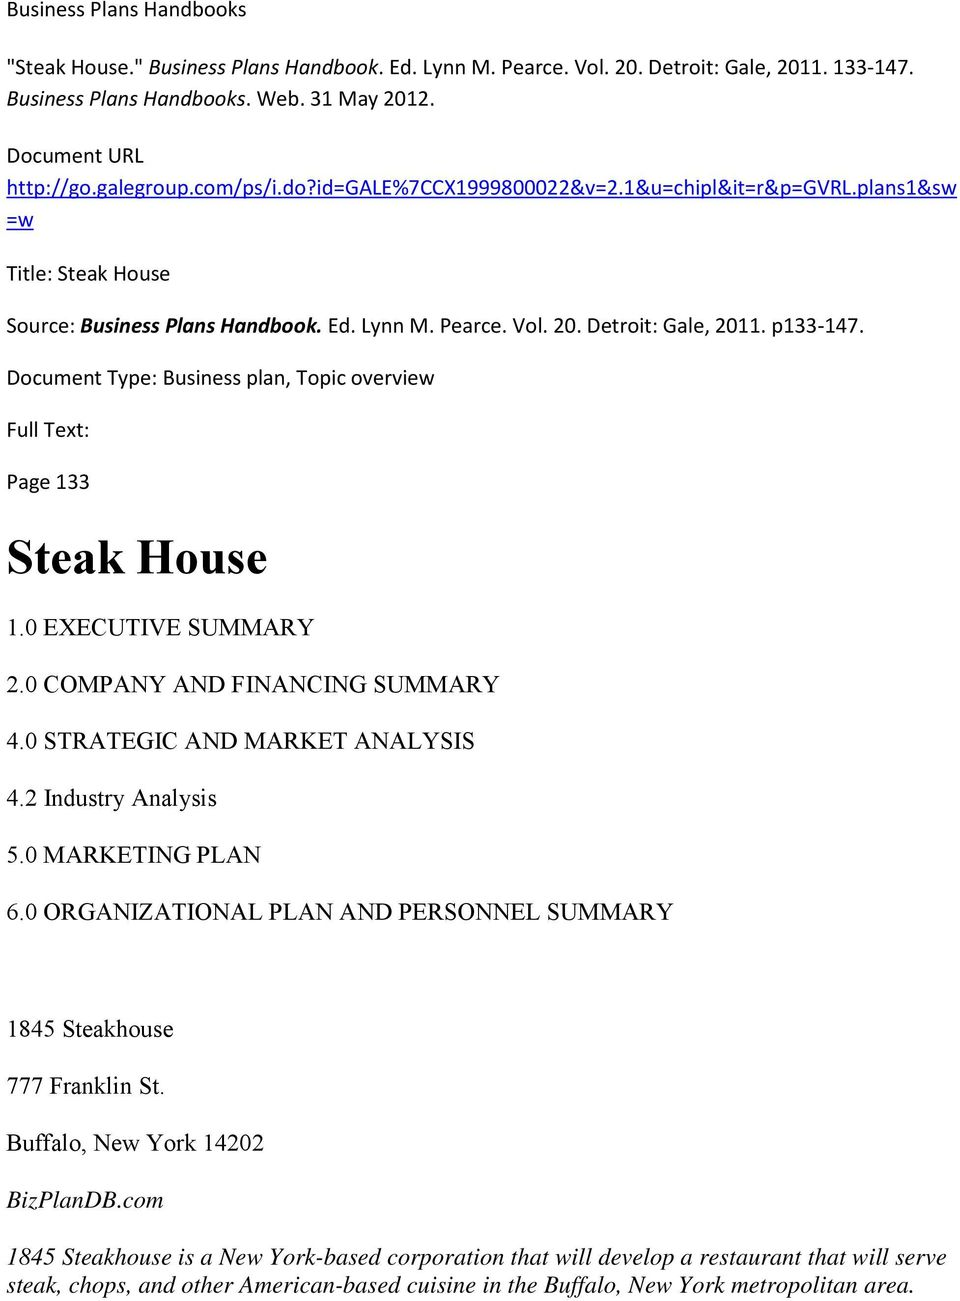 Document Type: Business plan, Topic overview Full Text: Page 133 Steak House 1.0 EXECUTIVE SUMMARY 2.0 COMPANY AND FINANCING SUMMARY 4.0 STRATEGIC AND MARKET ANALYSIS 4.2 Industry Analysis 5.